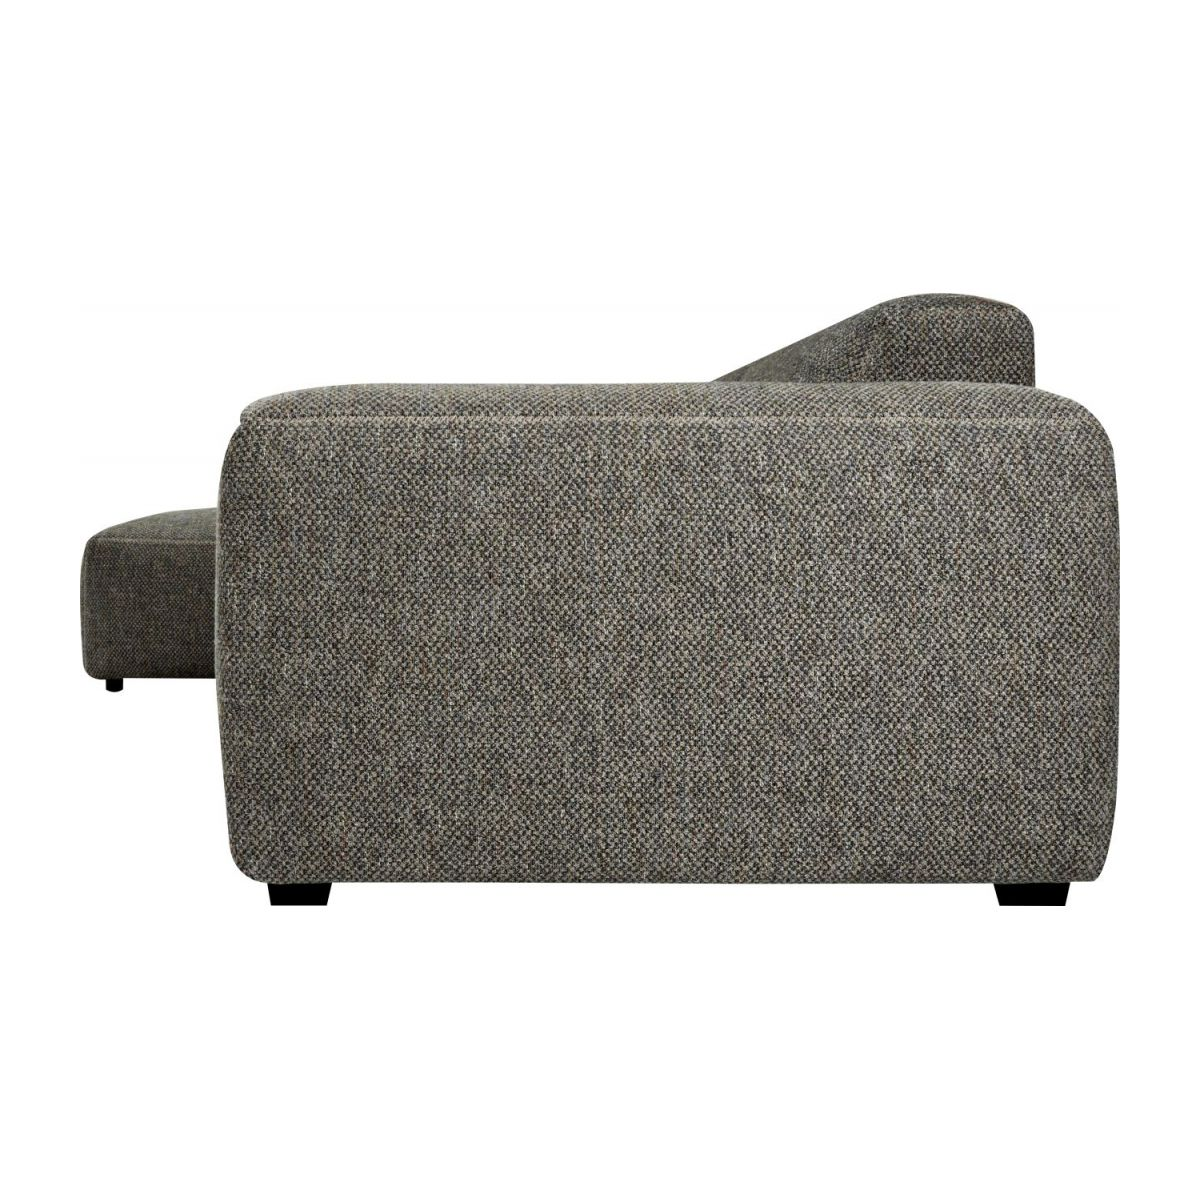 4-Sitzer Sofa aus Stoff Bellagio night black n°5